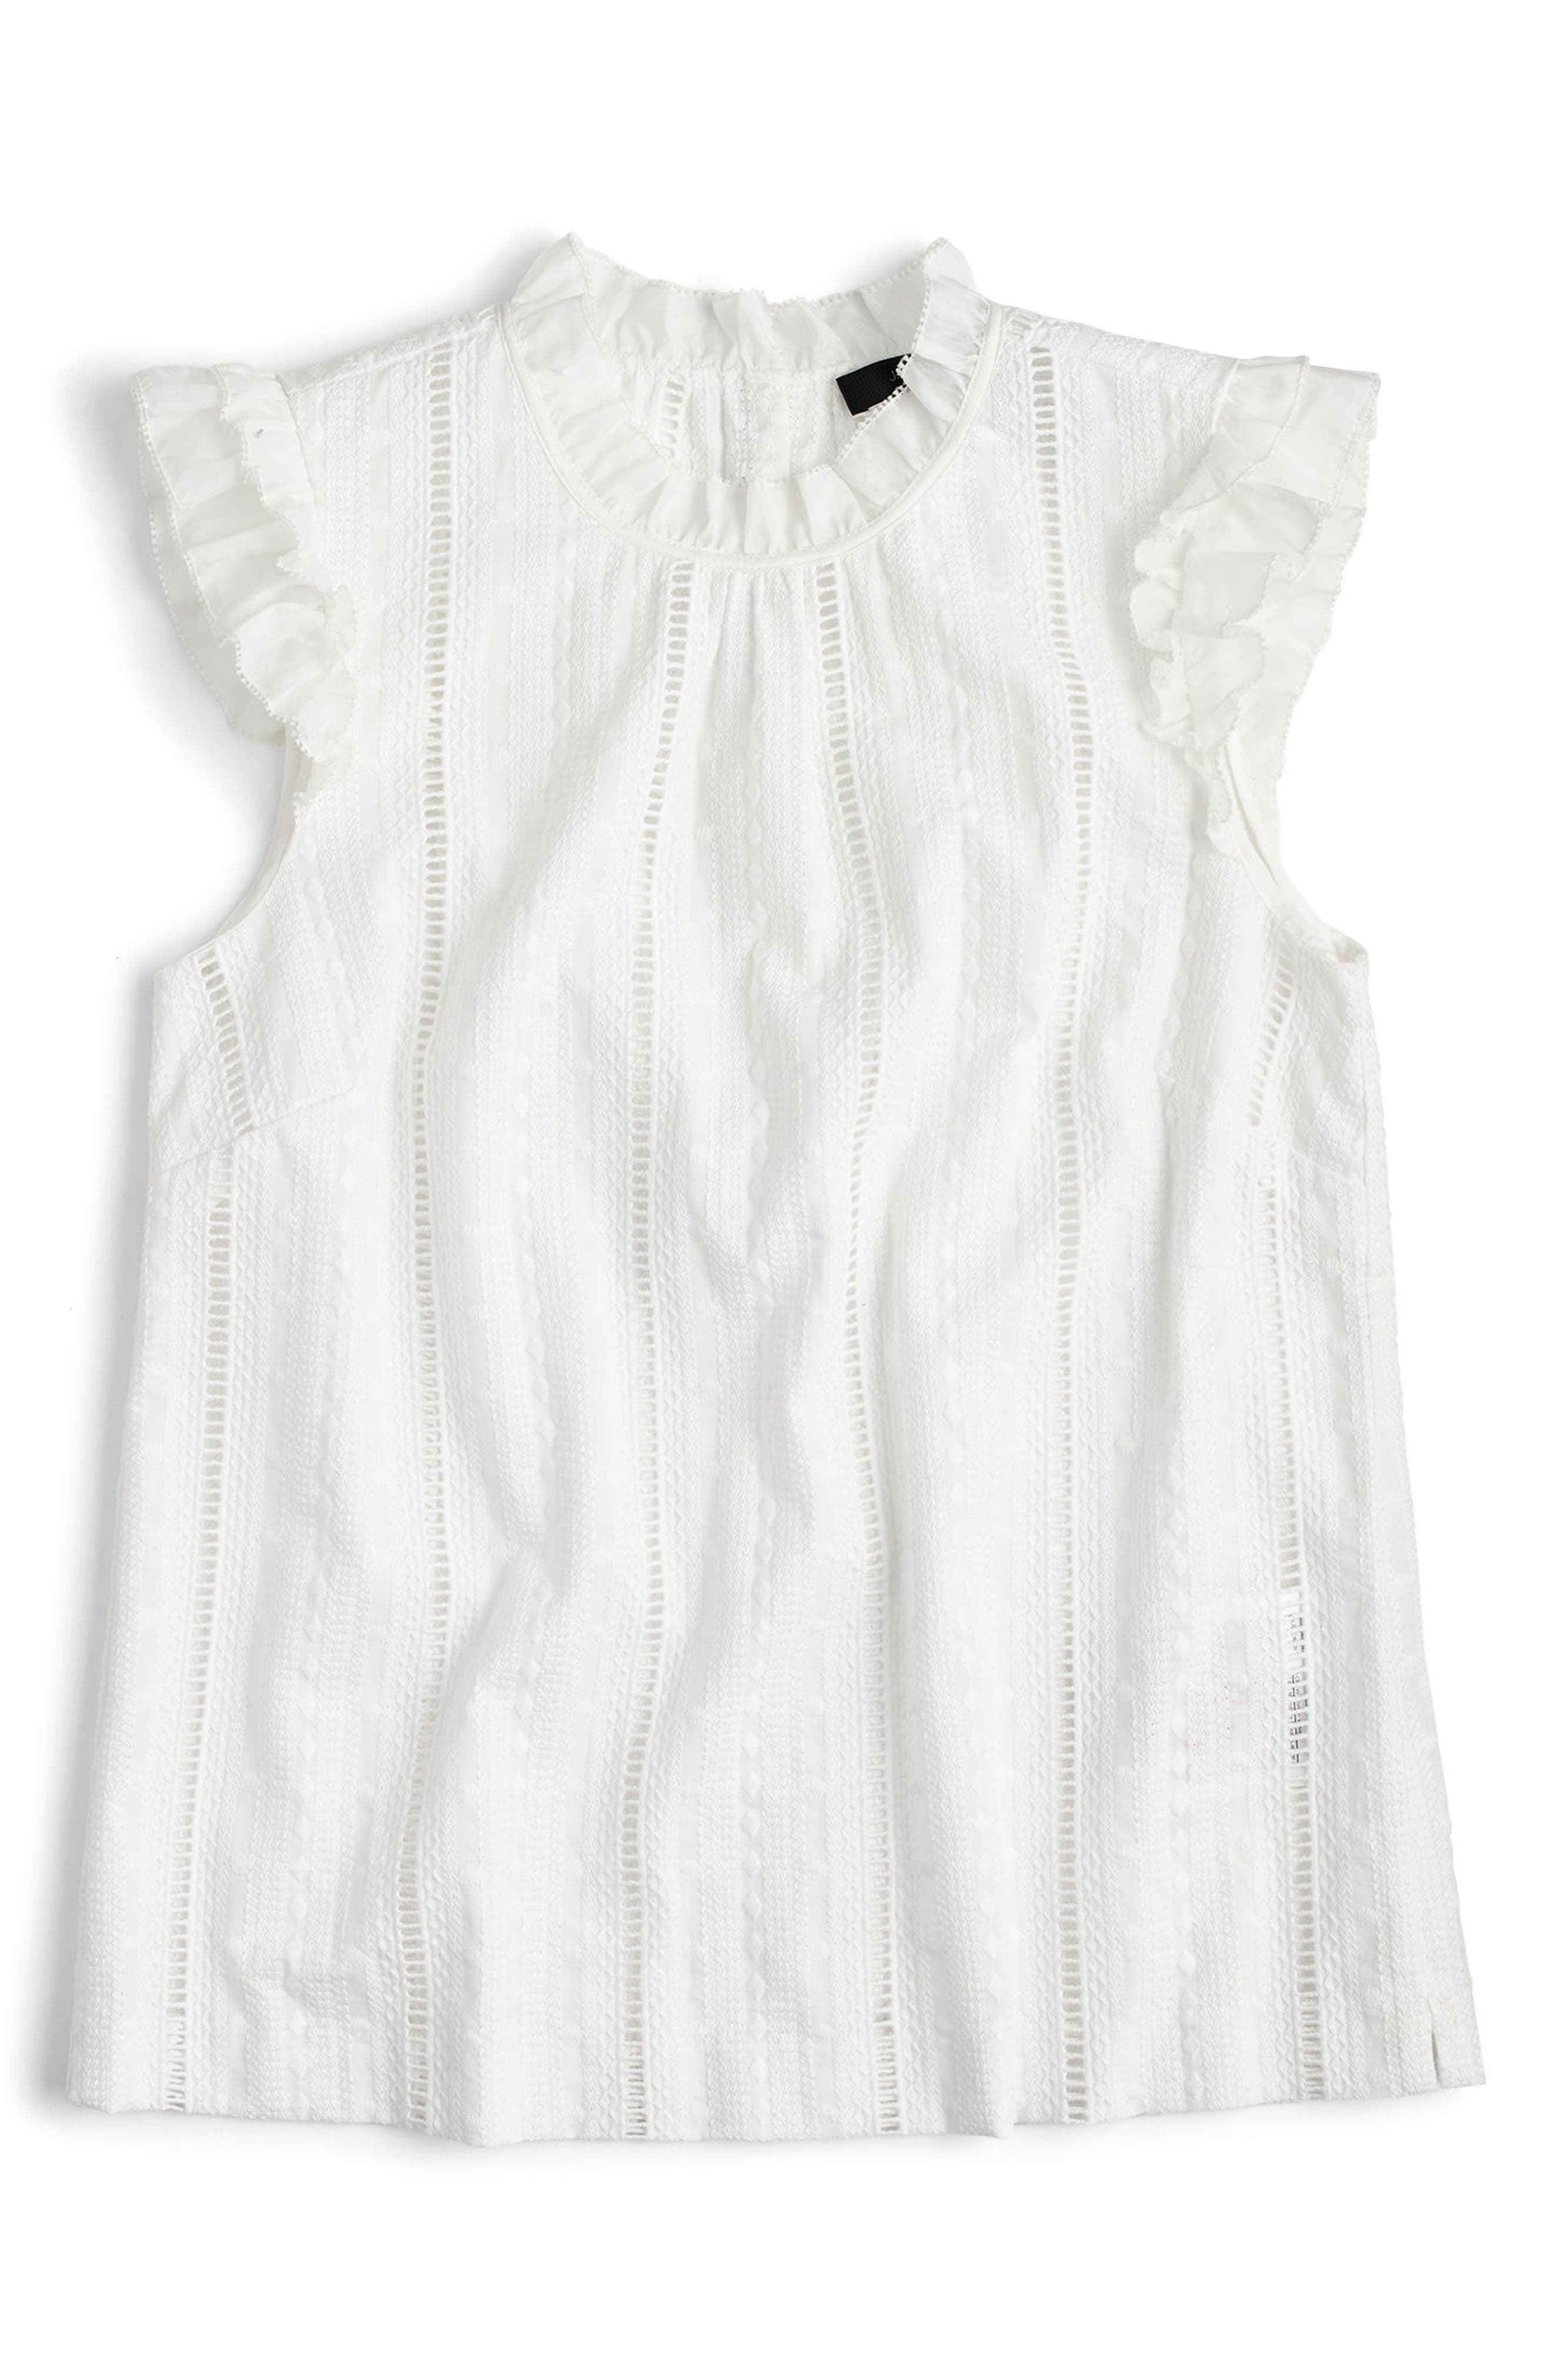 J.Crew Eyelet Ruffle Mock Neck Top (Regular & Petite)